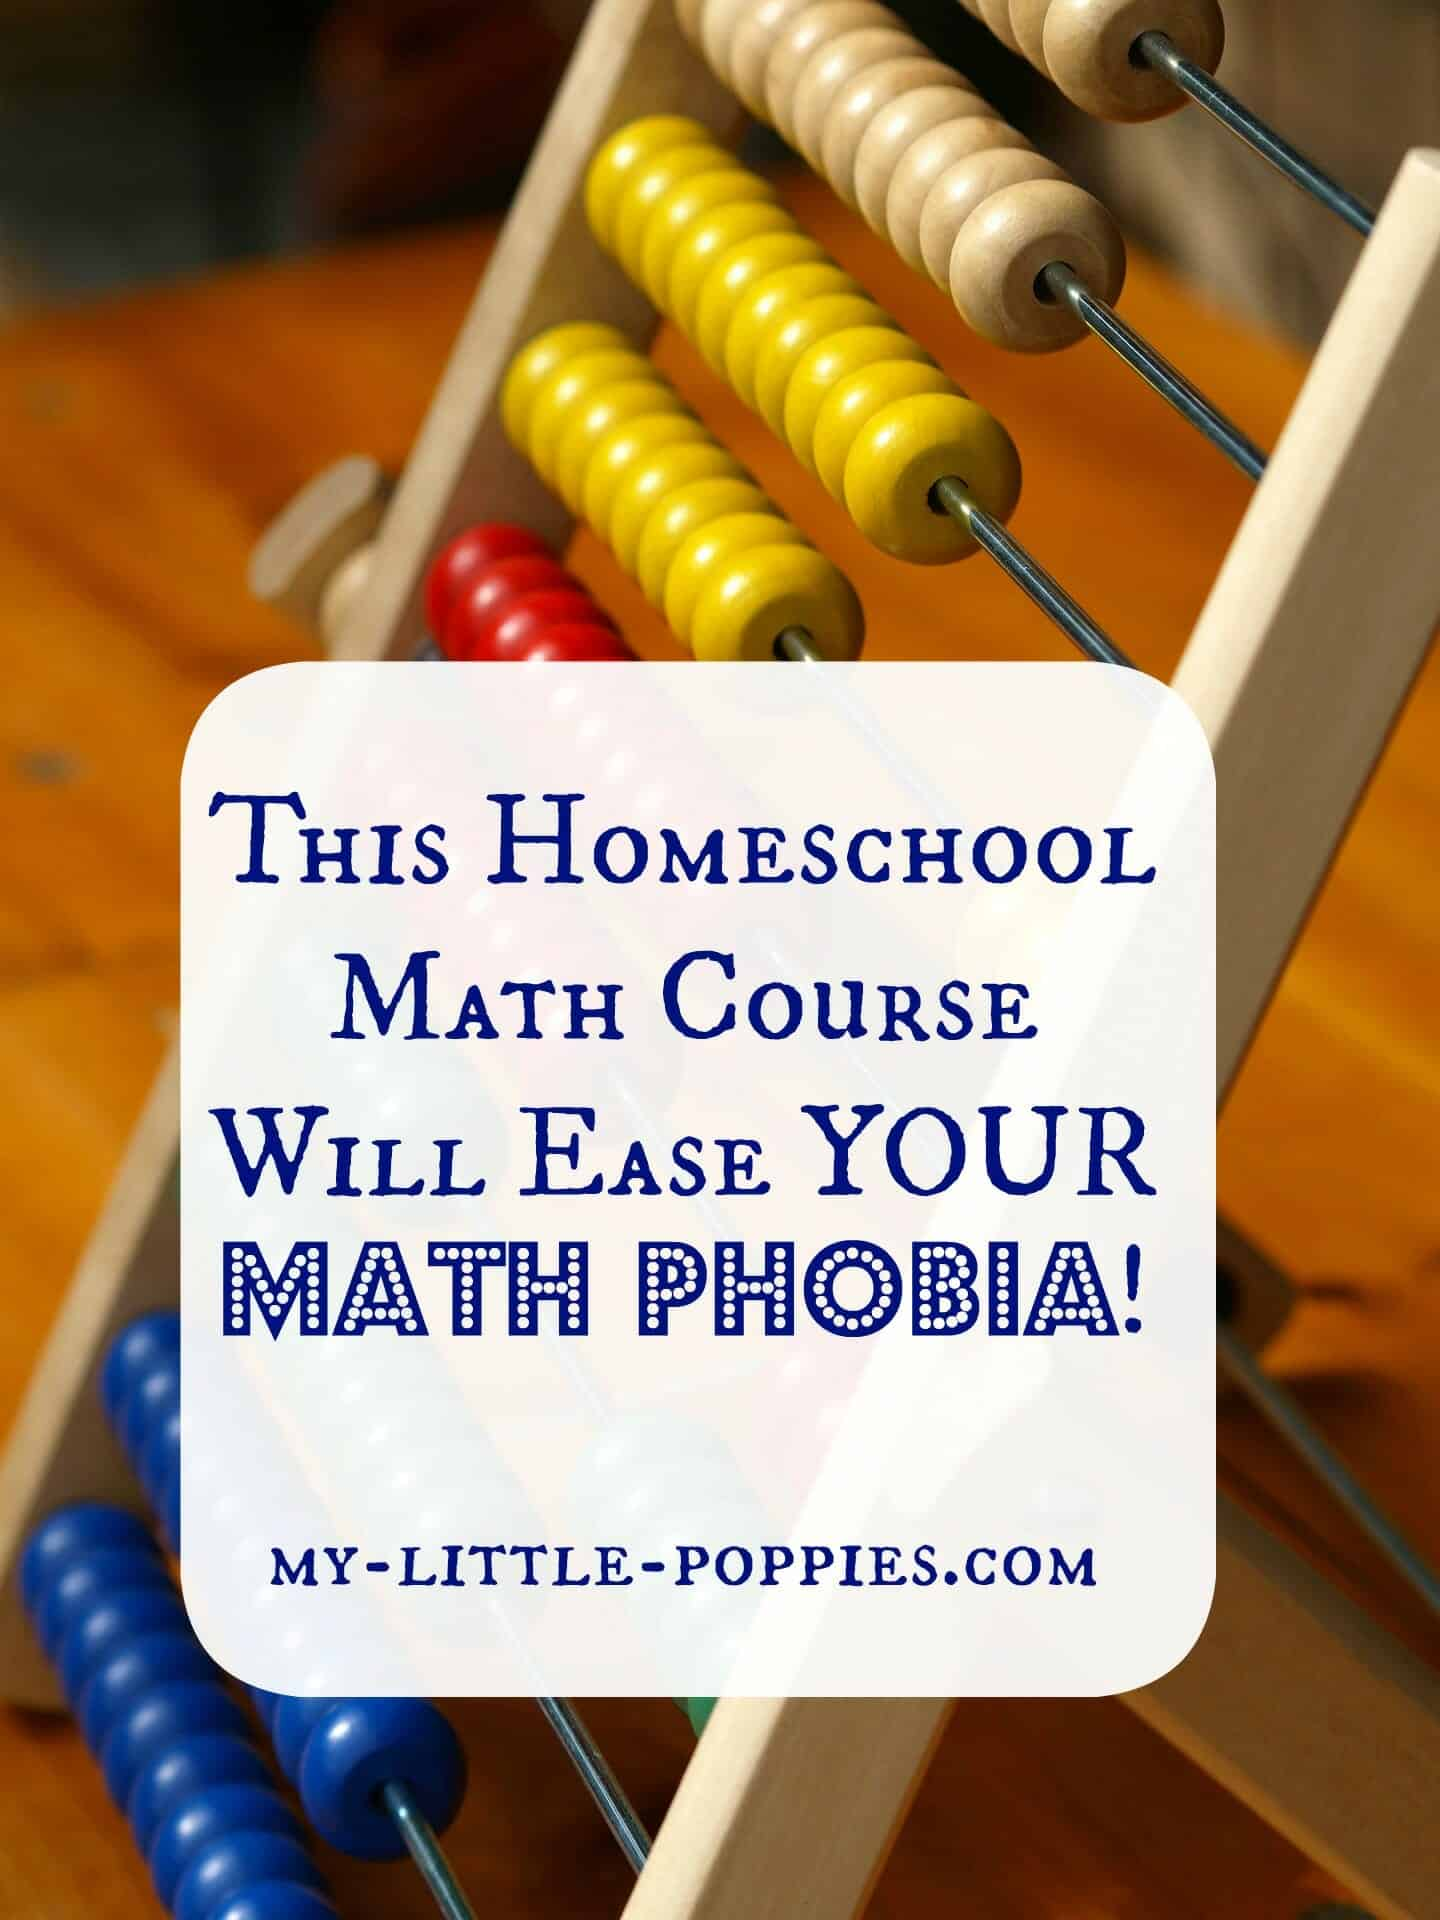 Worksheet Math For Homeschool this homeschool math course will ease your phobia my phobia